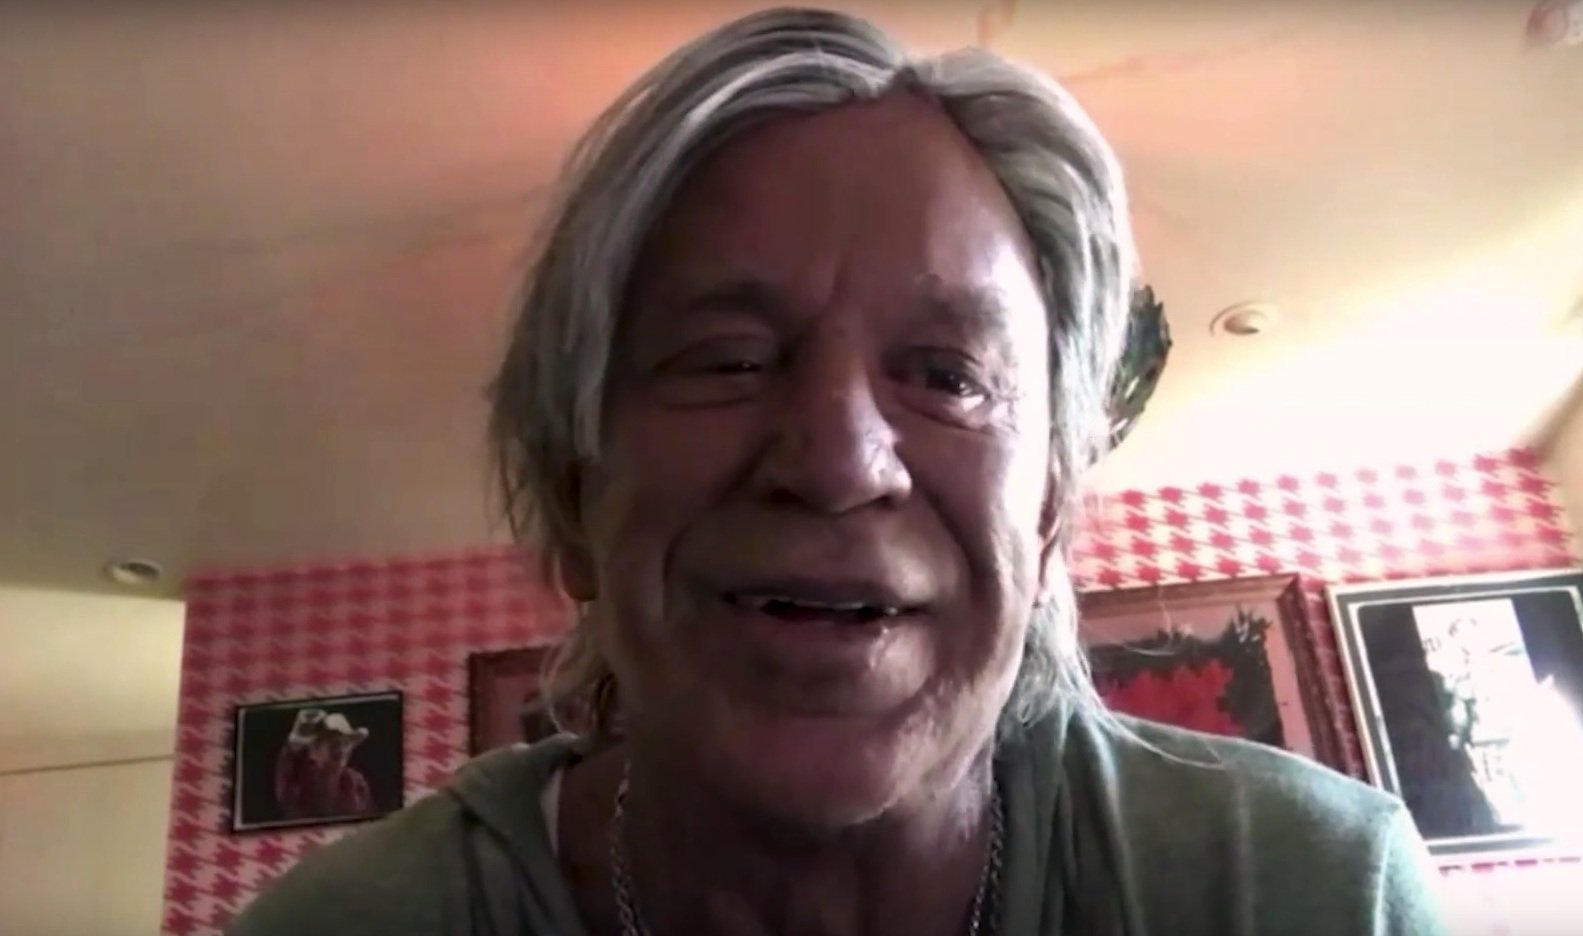 At 64 years young, Mickey Rourke wants 2 more boxing matches